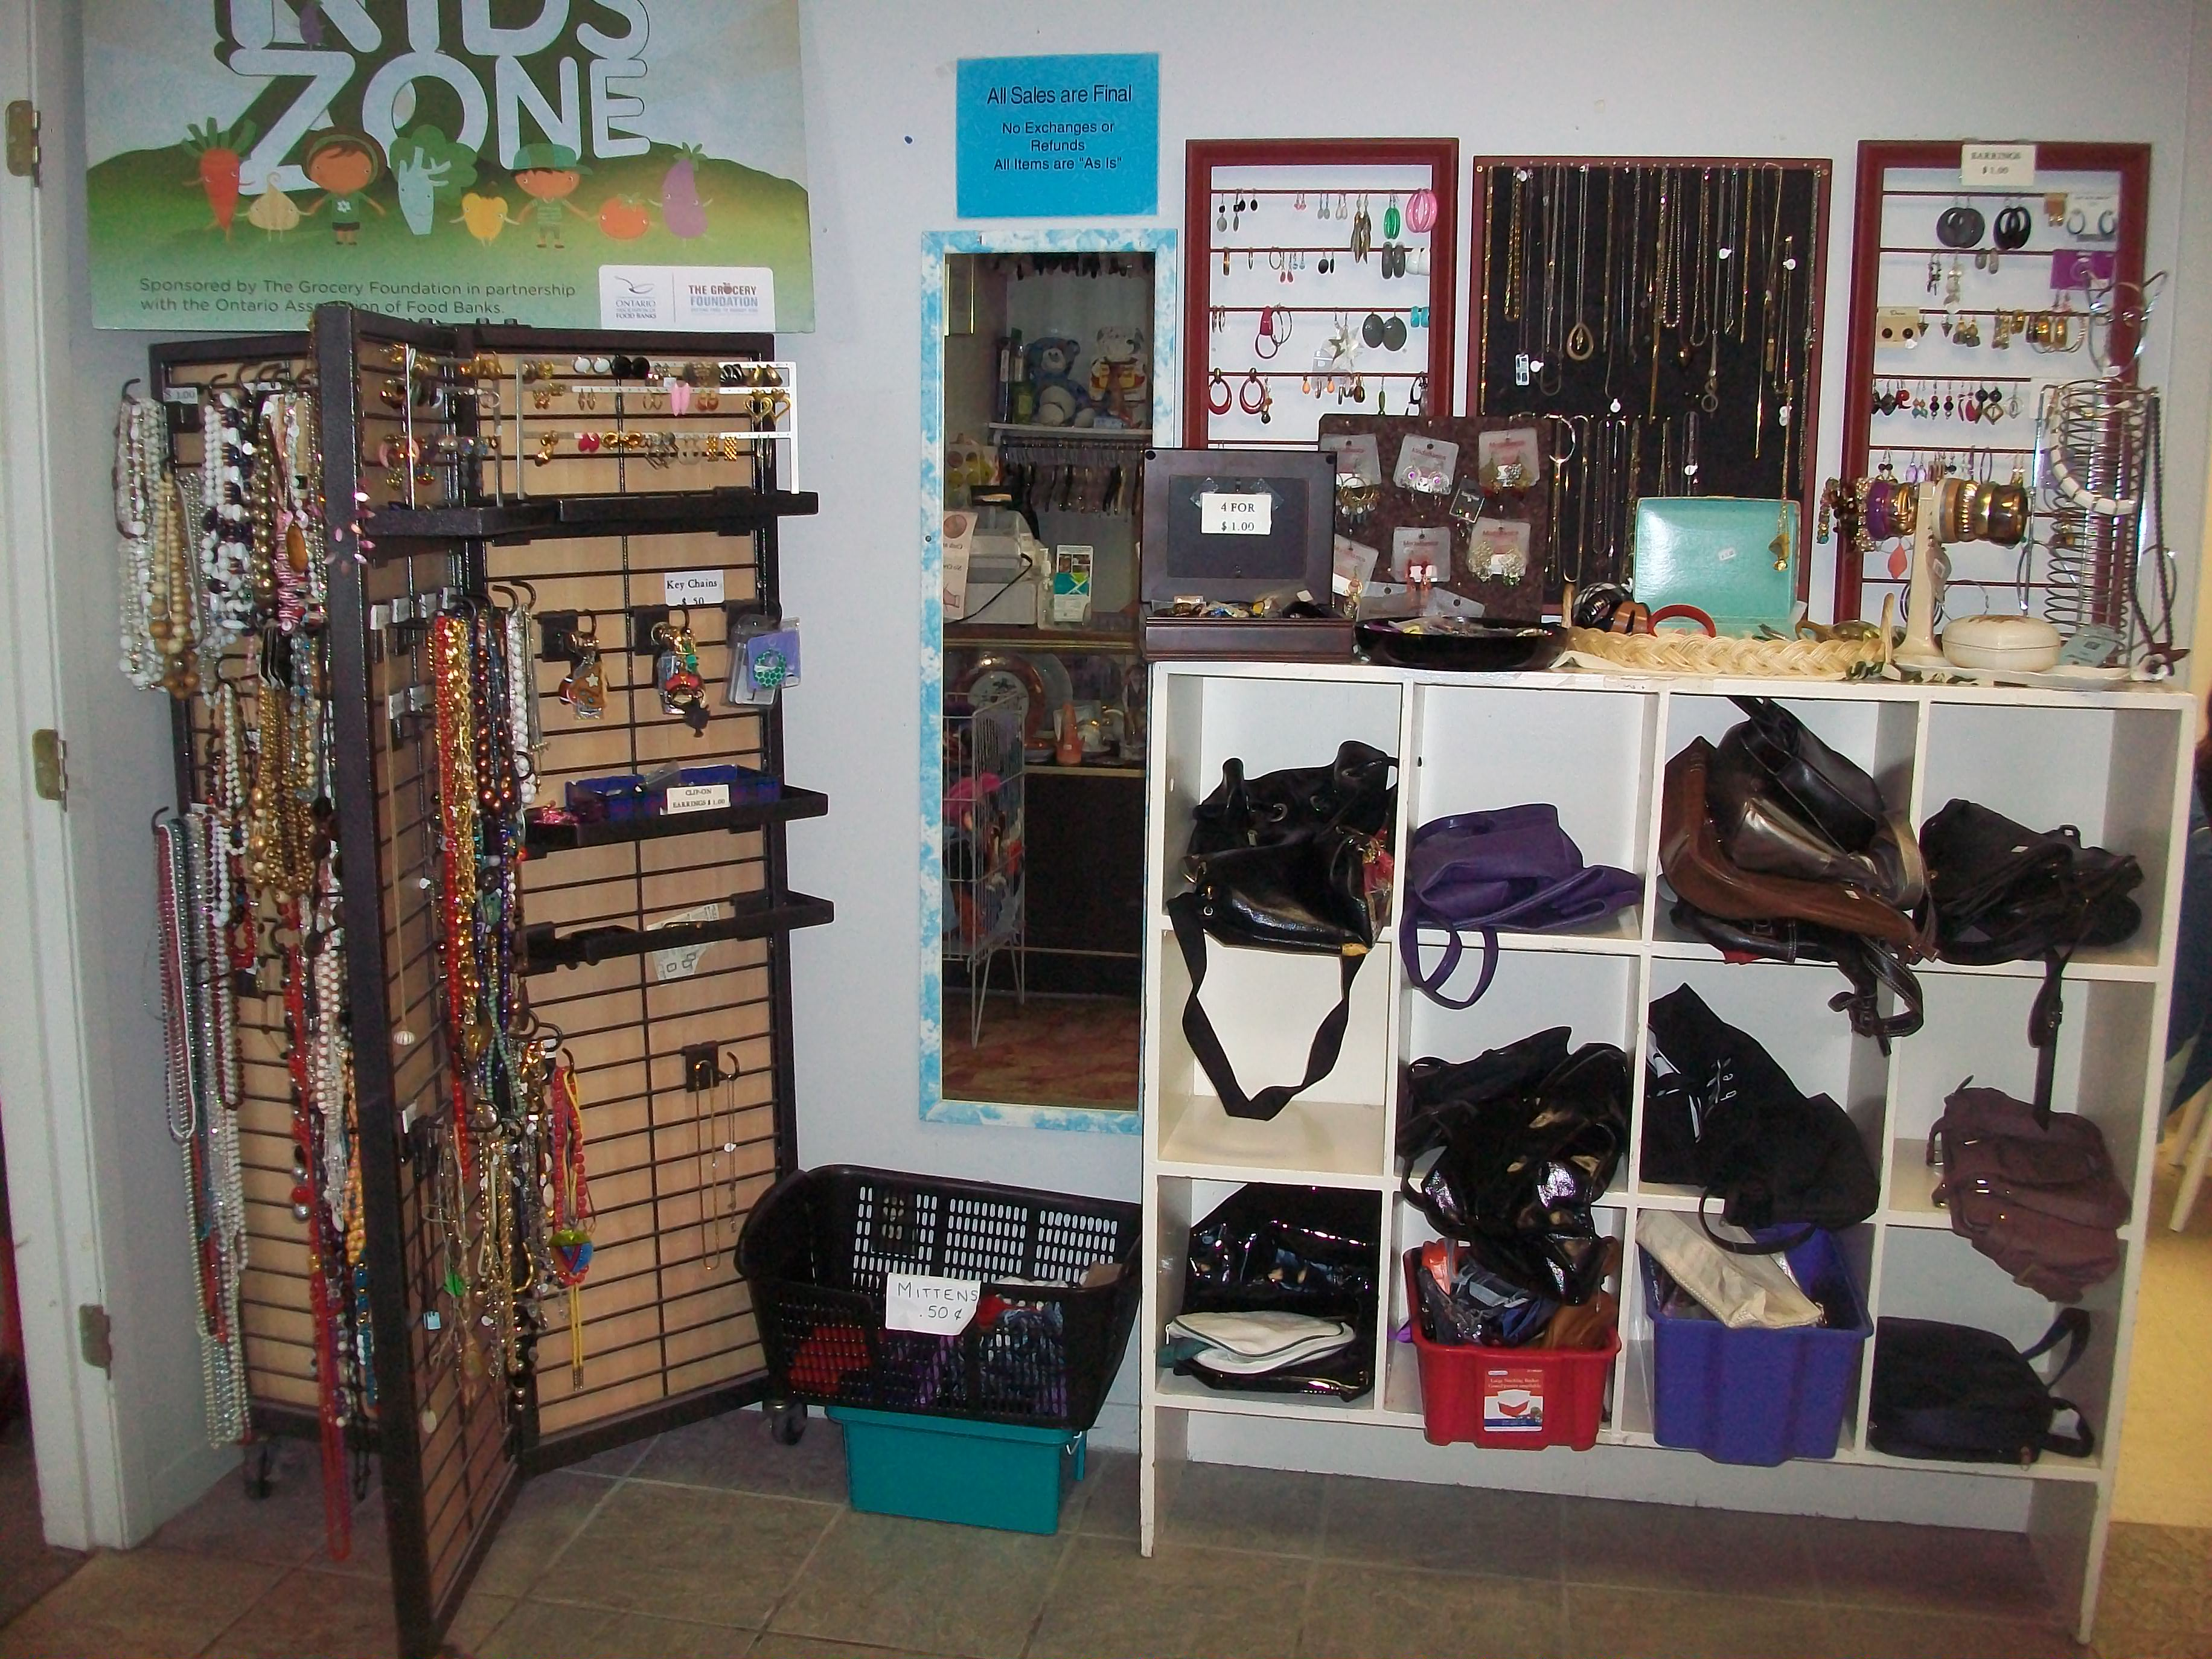 purses, jewelry, and other small collectables available at their thrift store location.